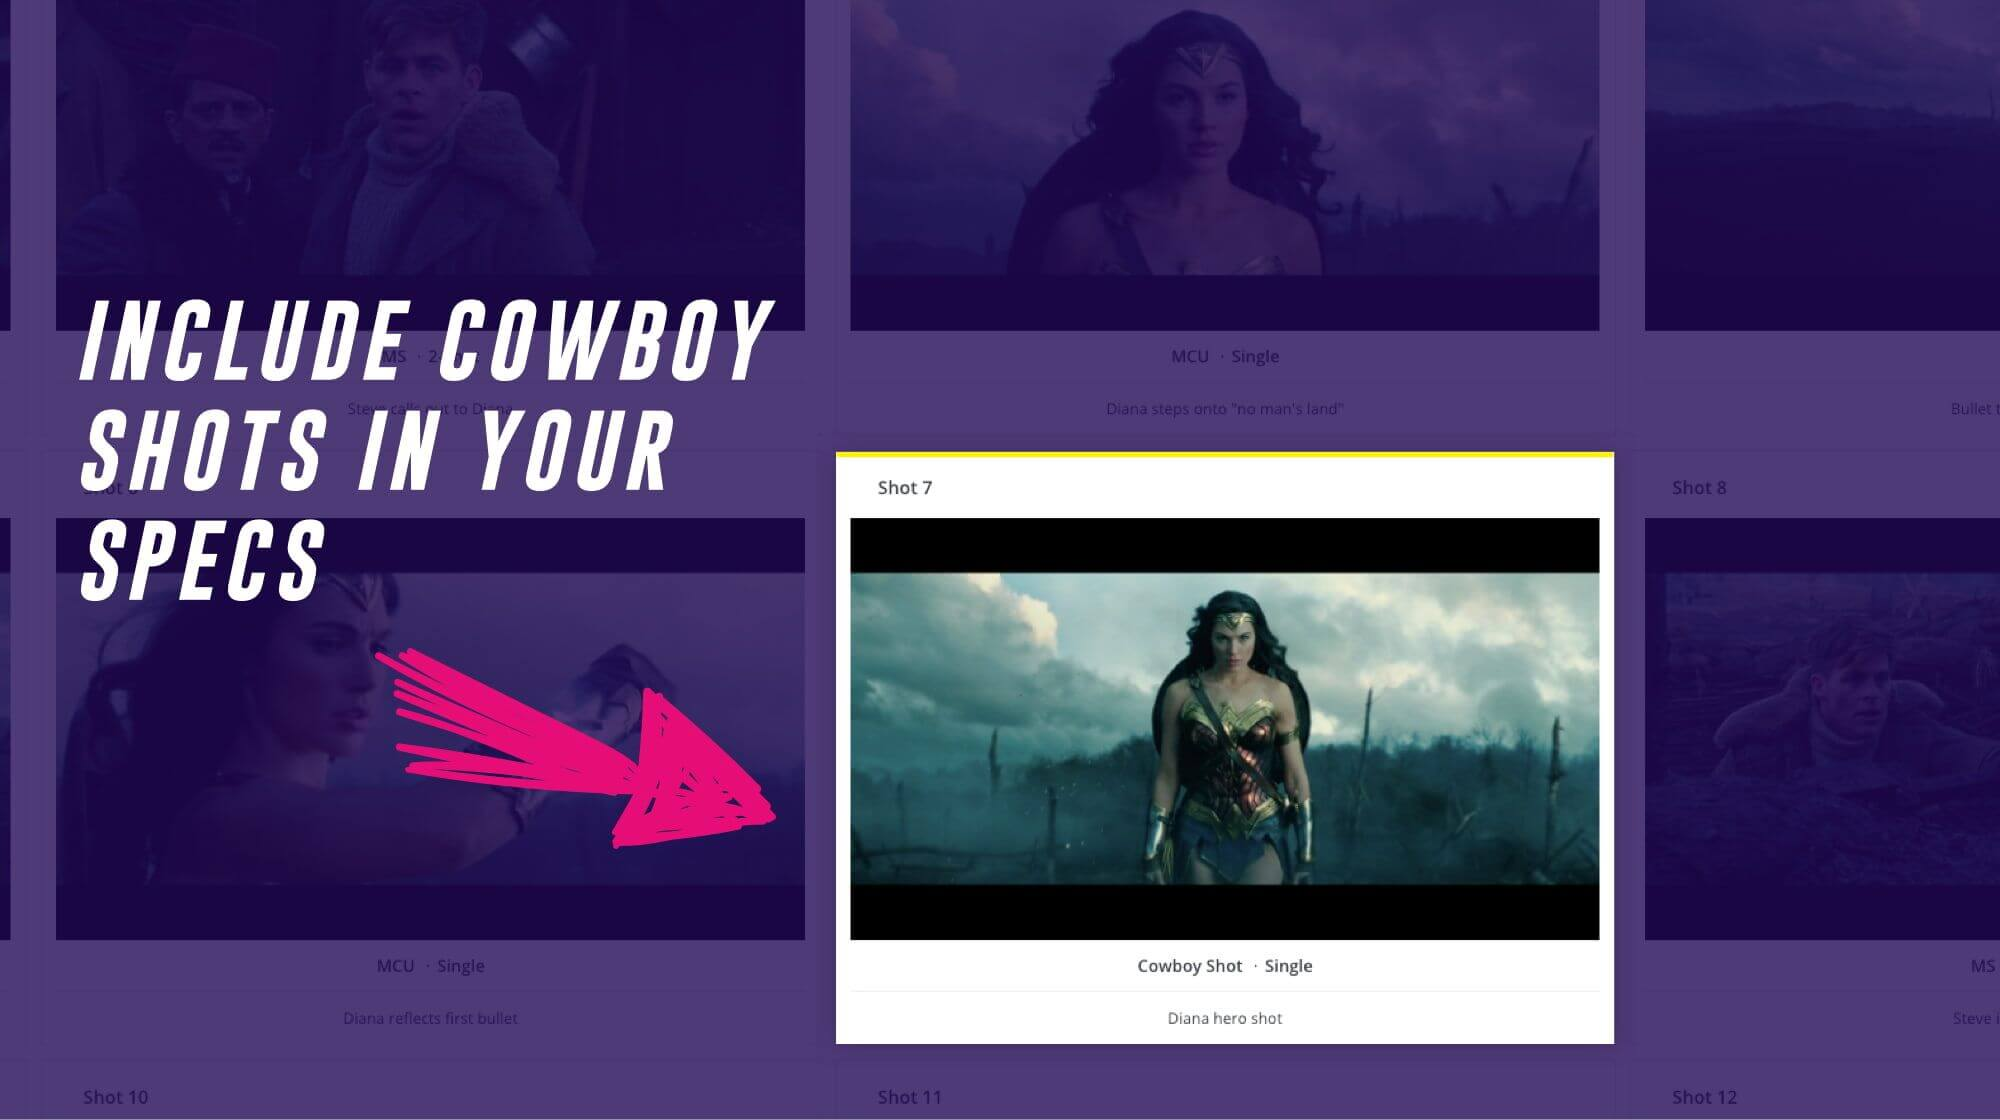 Different Types of Shots Cowboy Shot Wonder Woman Shot List StudioBinder